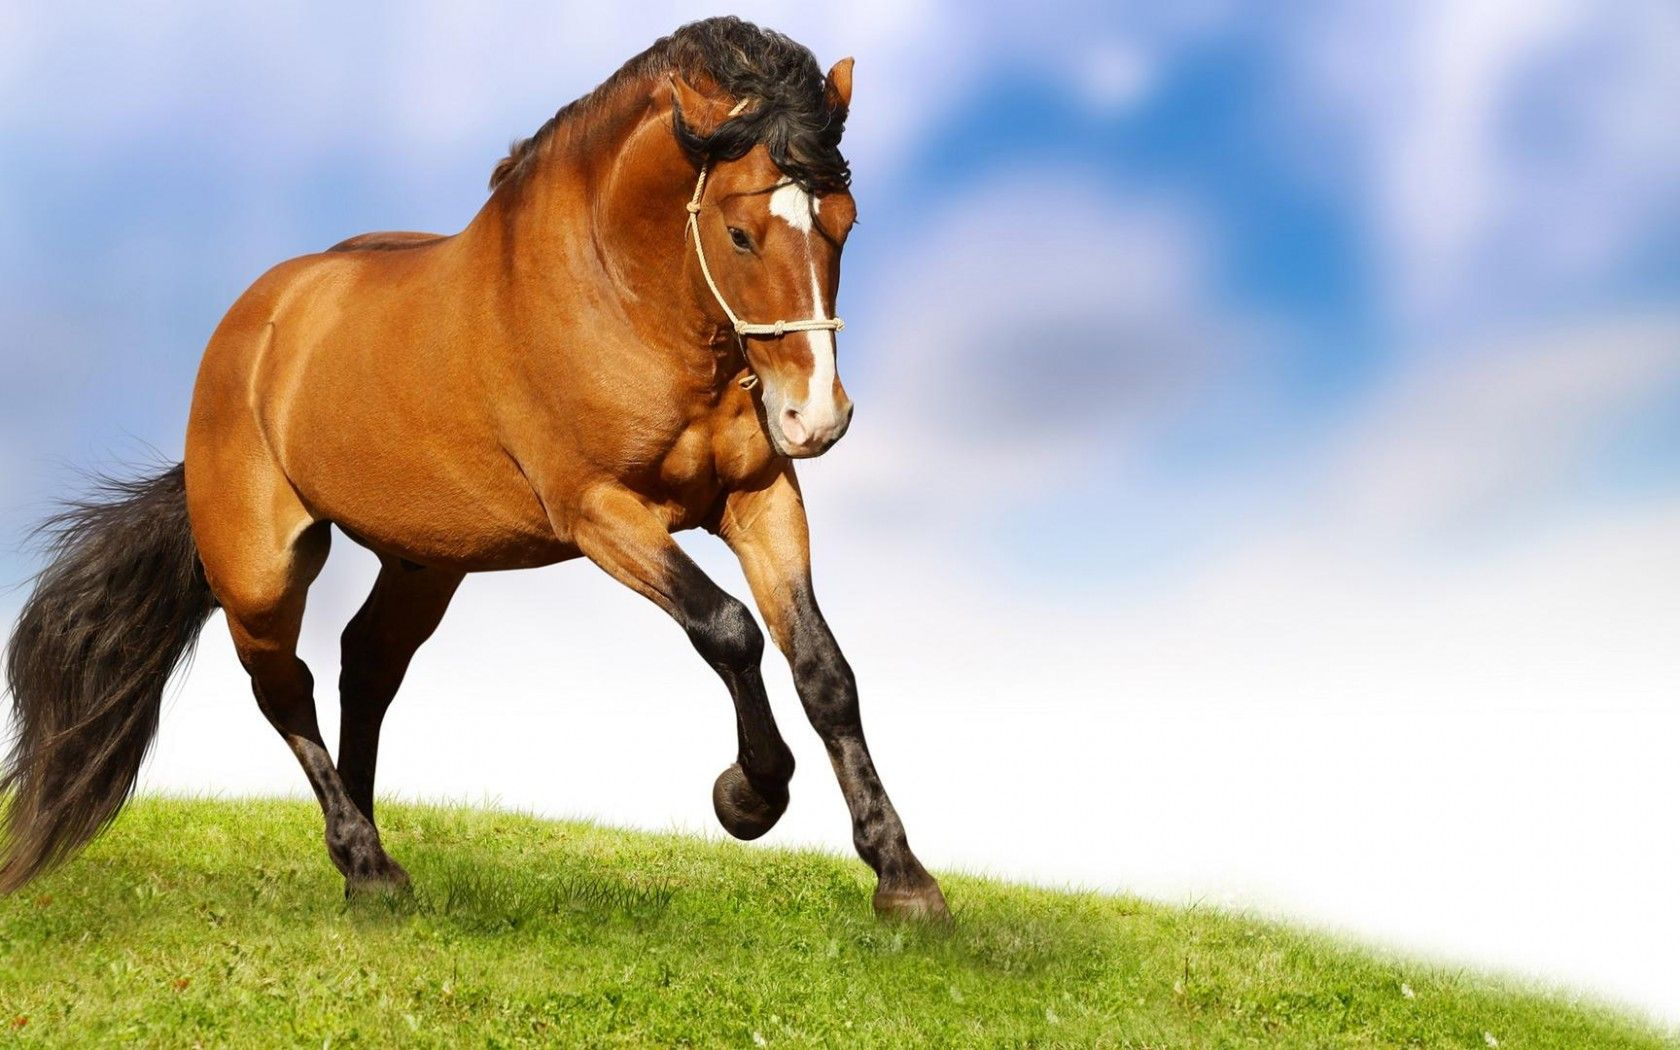 Red Horse Wallpaper Widescreen Hd Free Download Horse Wallpaper Horses Horse Pictures